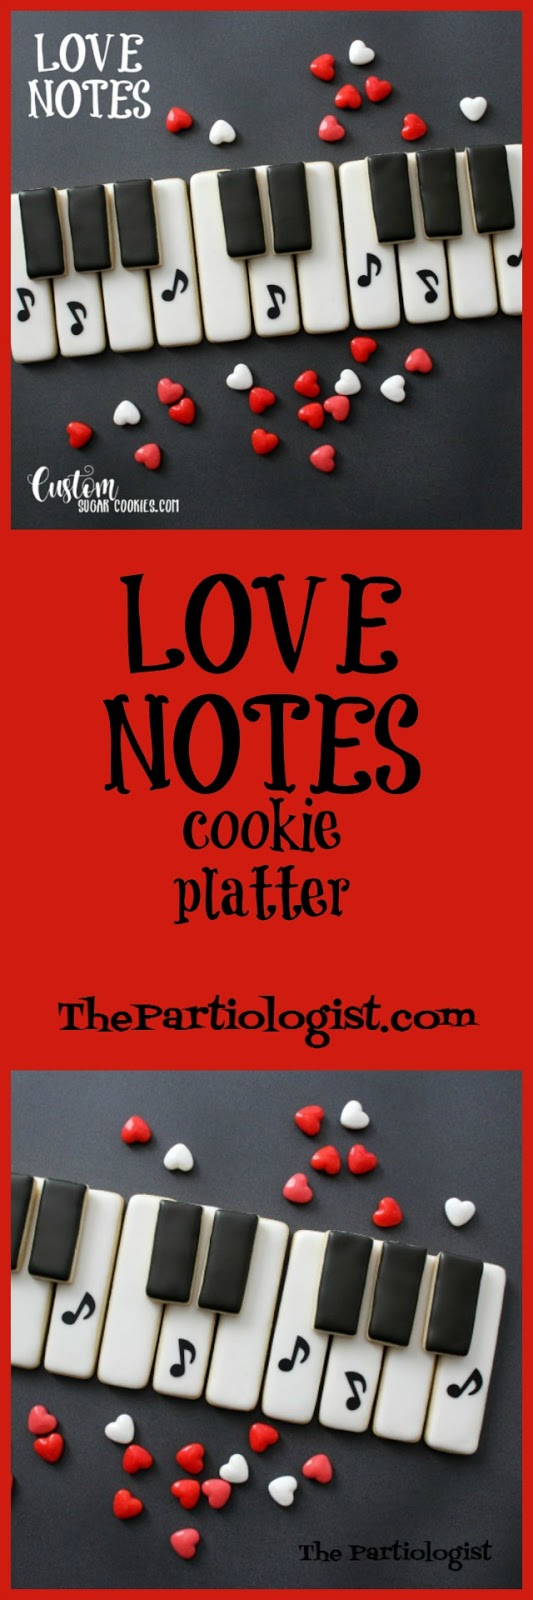 Love Notes Cookie Platter